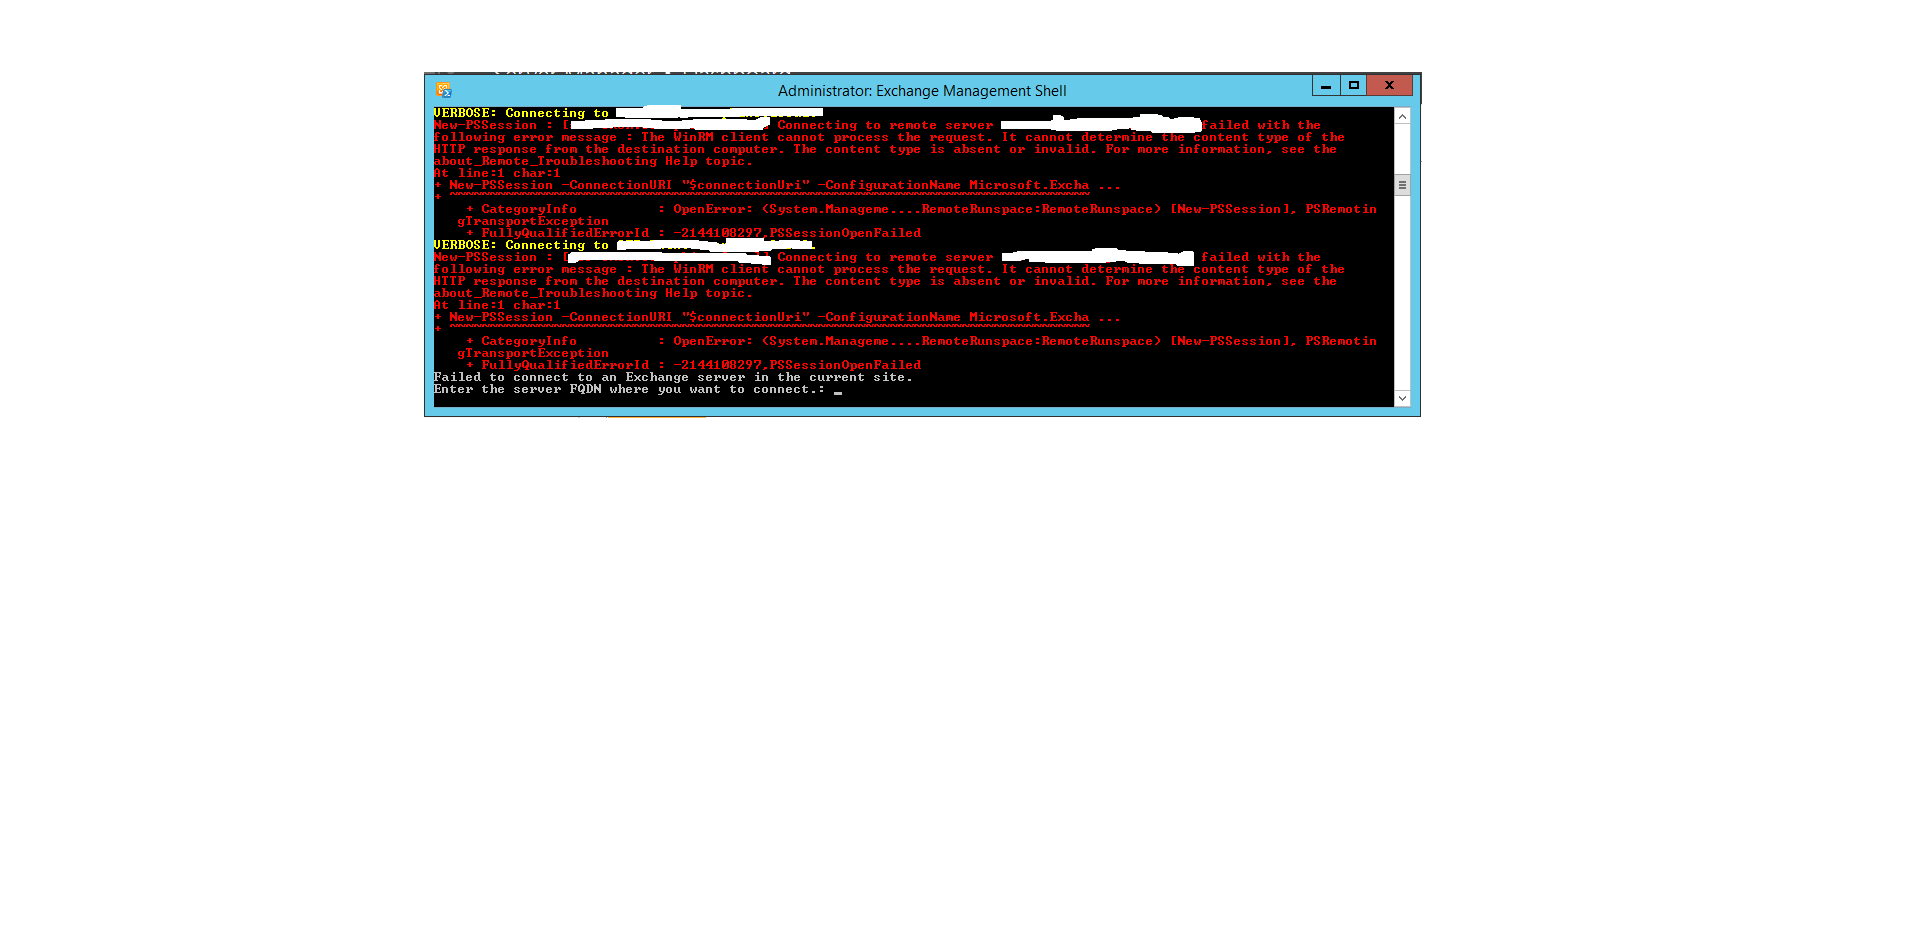 Fix: Blank page when loading ECP on Exchange 2013 43746770-e05e-4742-9359-2fdcecb32487?upload=true.png